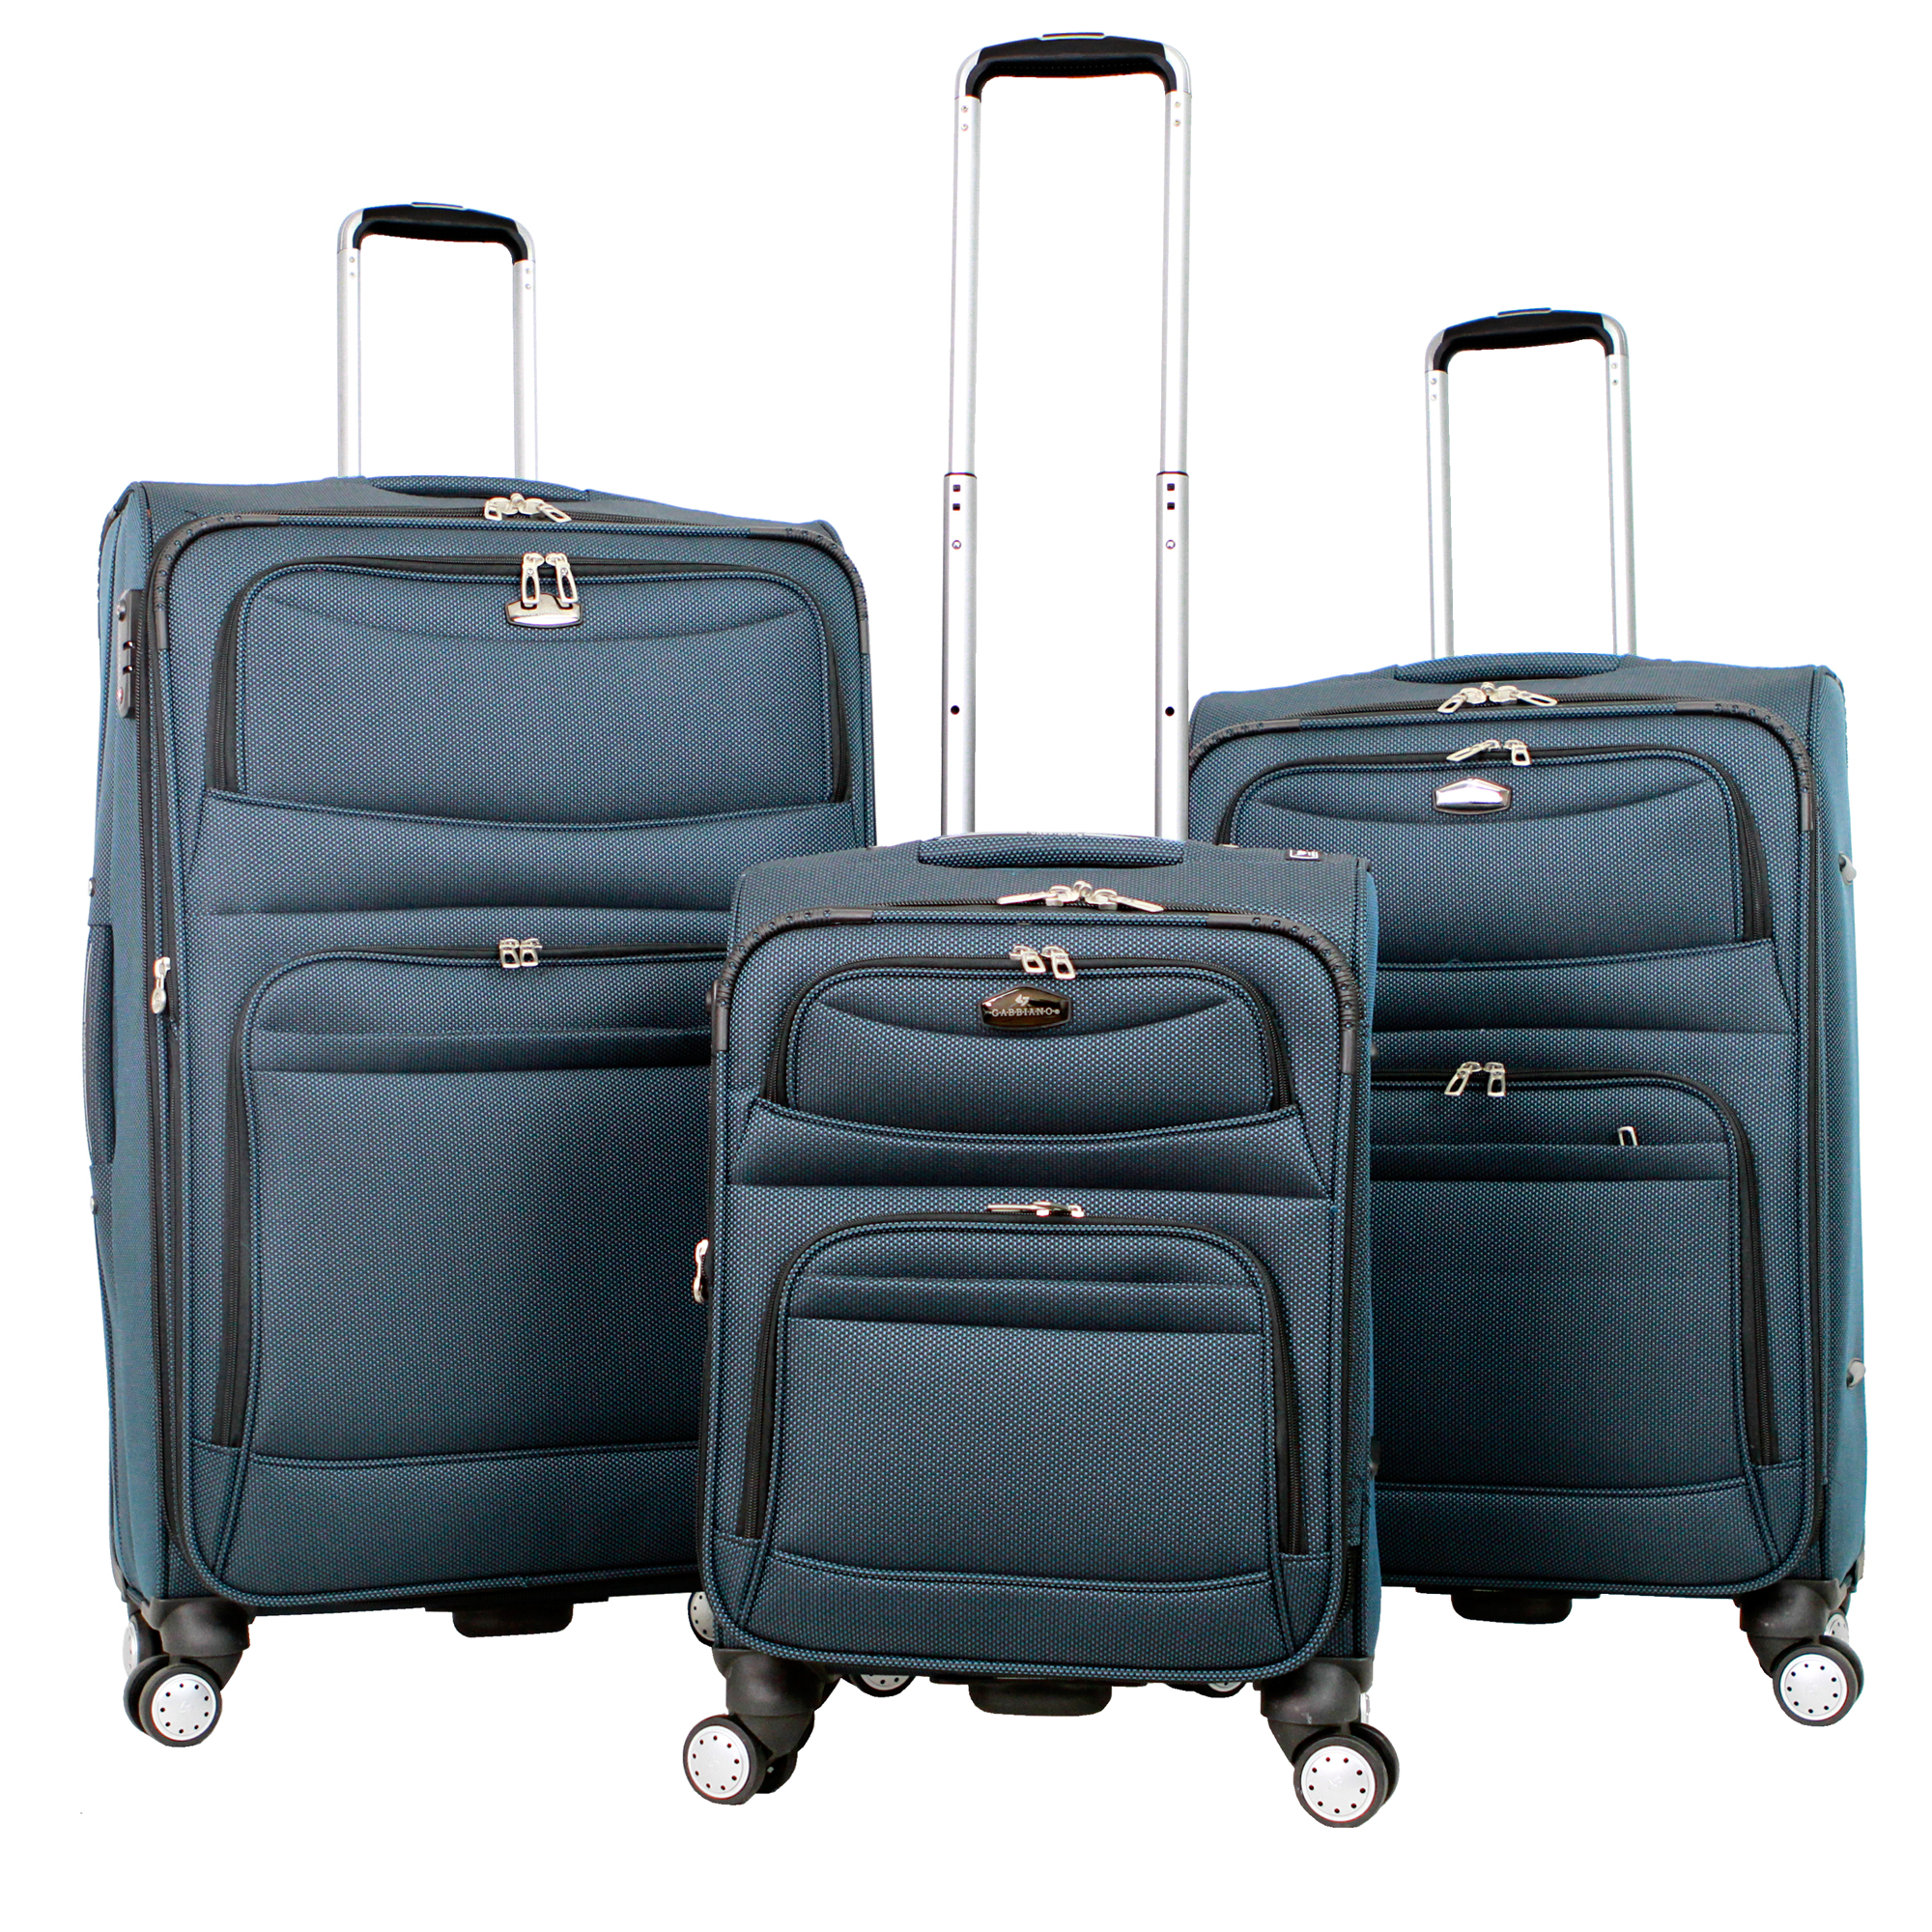 Softside Luggage- The Vintage